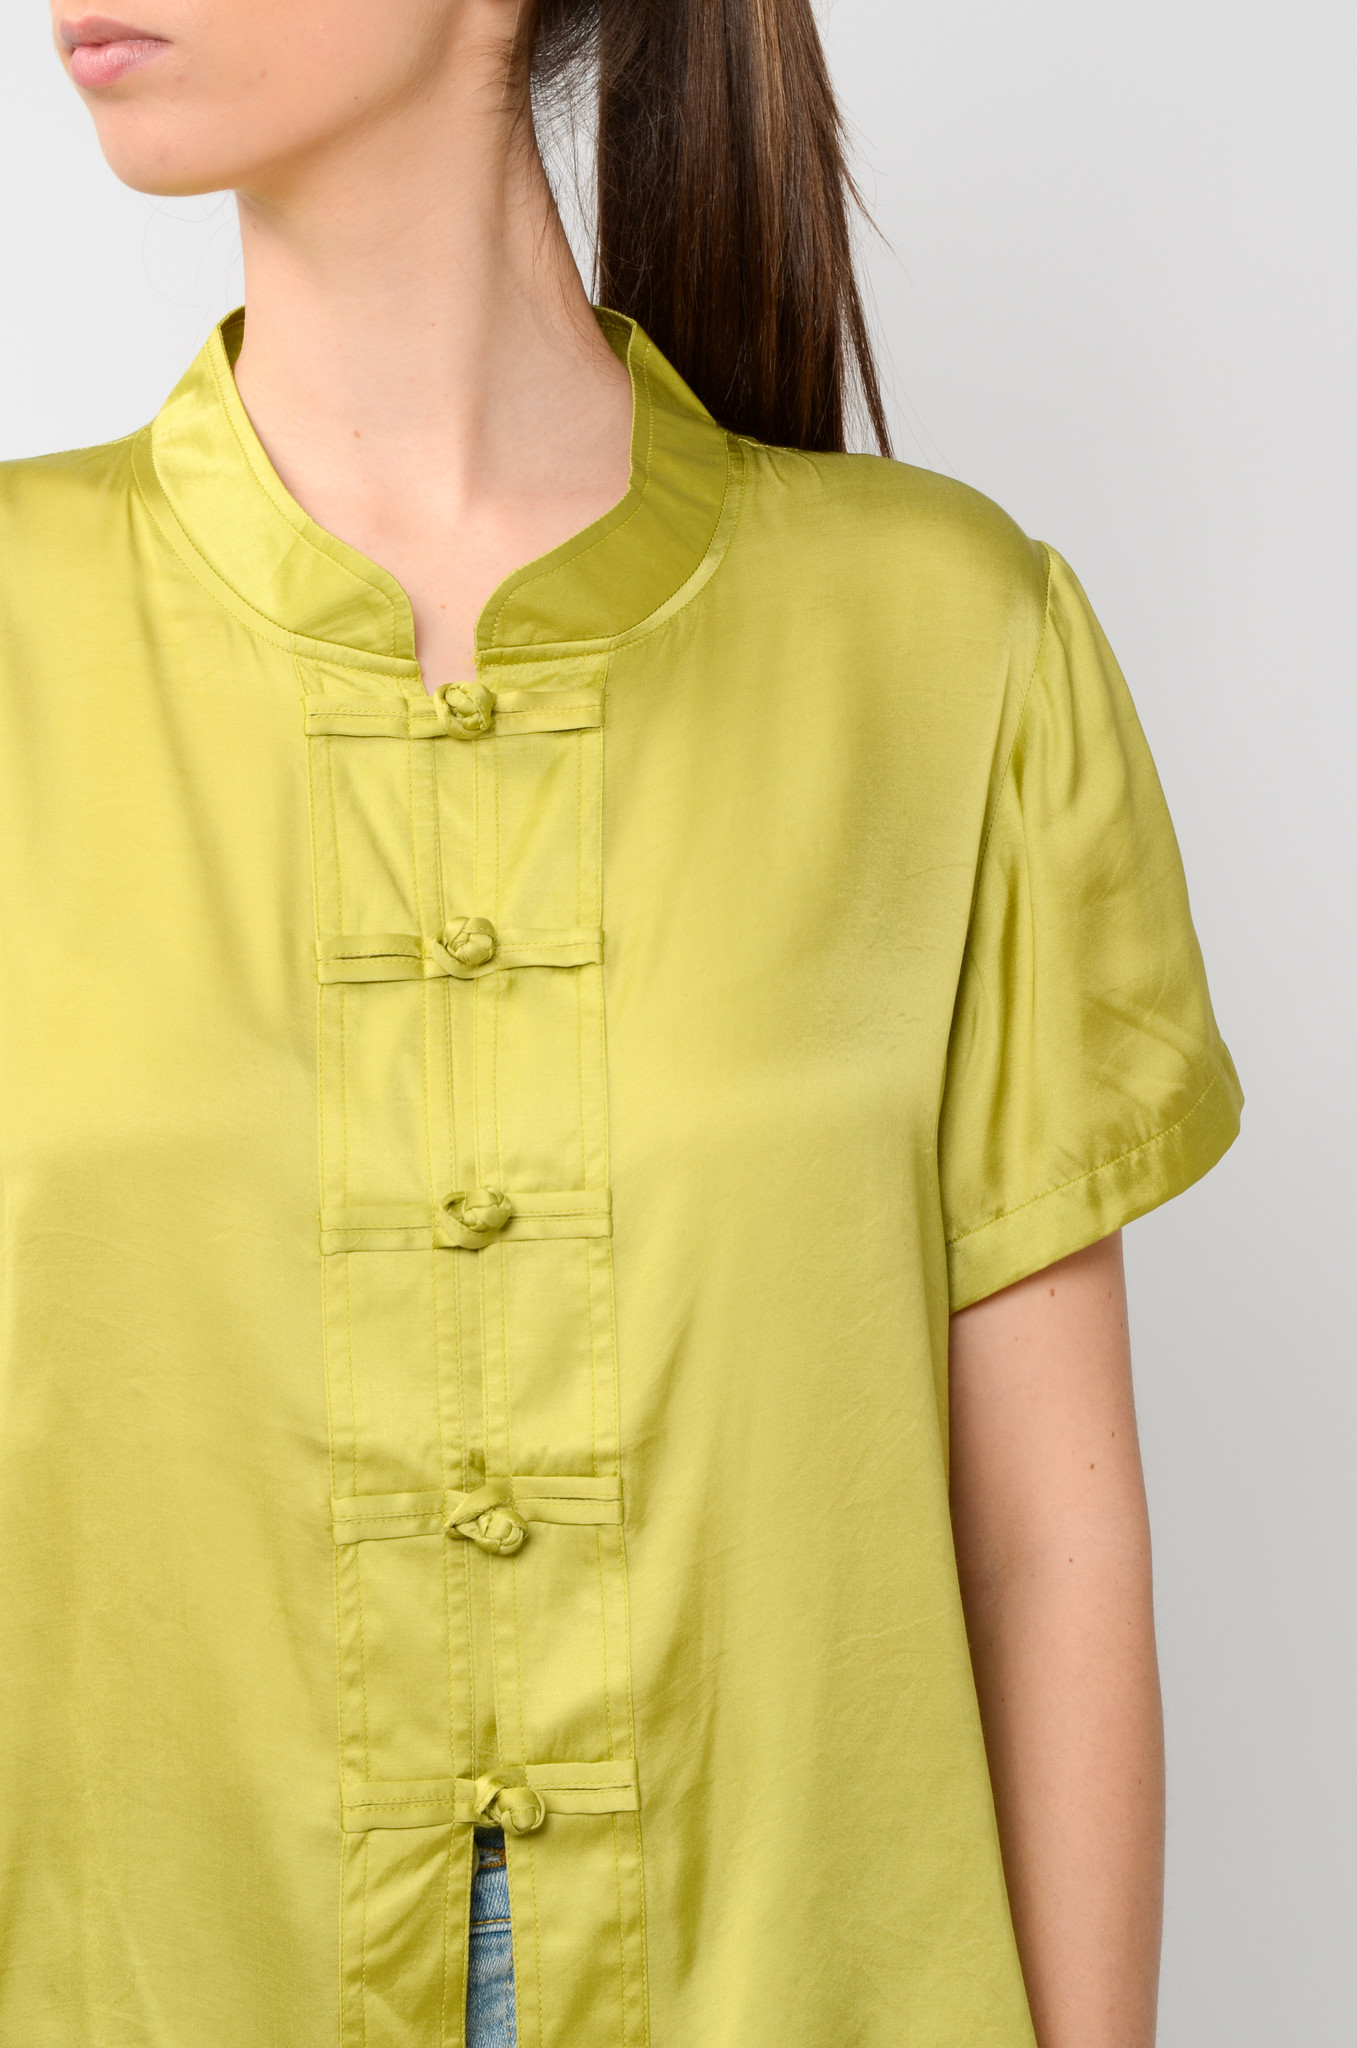 LOTUS TOP IN OLIVE-5